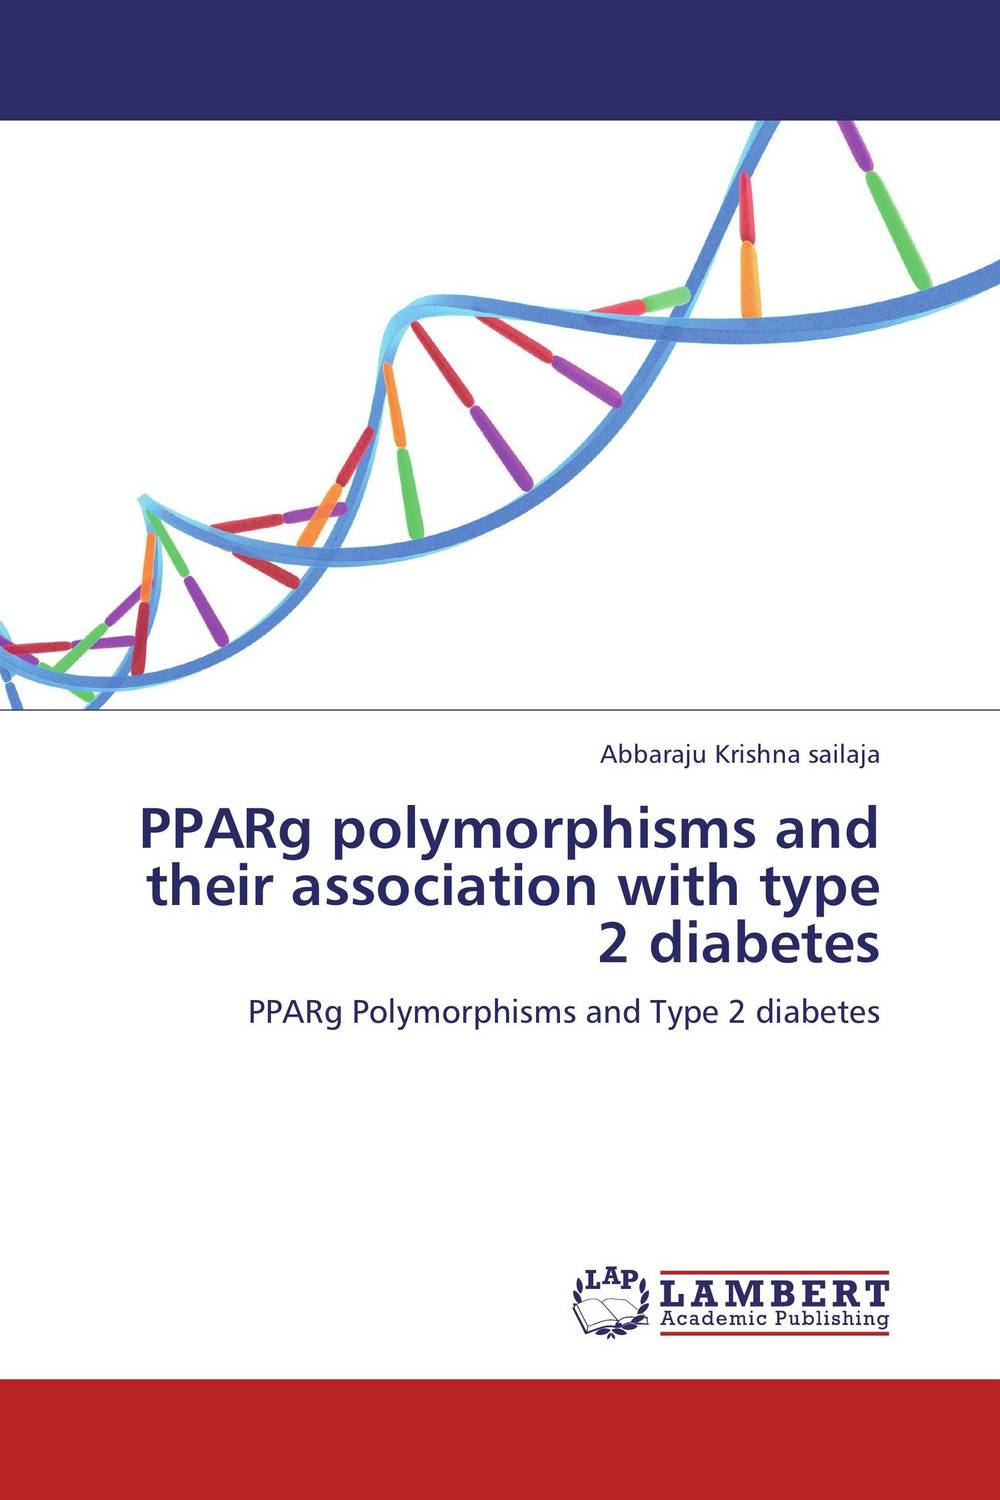 PPARg polymorphisms and their association with type 2 diabetes a preliminary study on association of adiponectin gene polymorphism